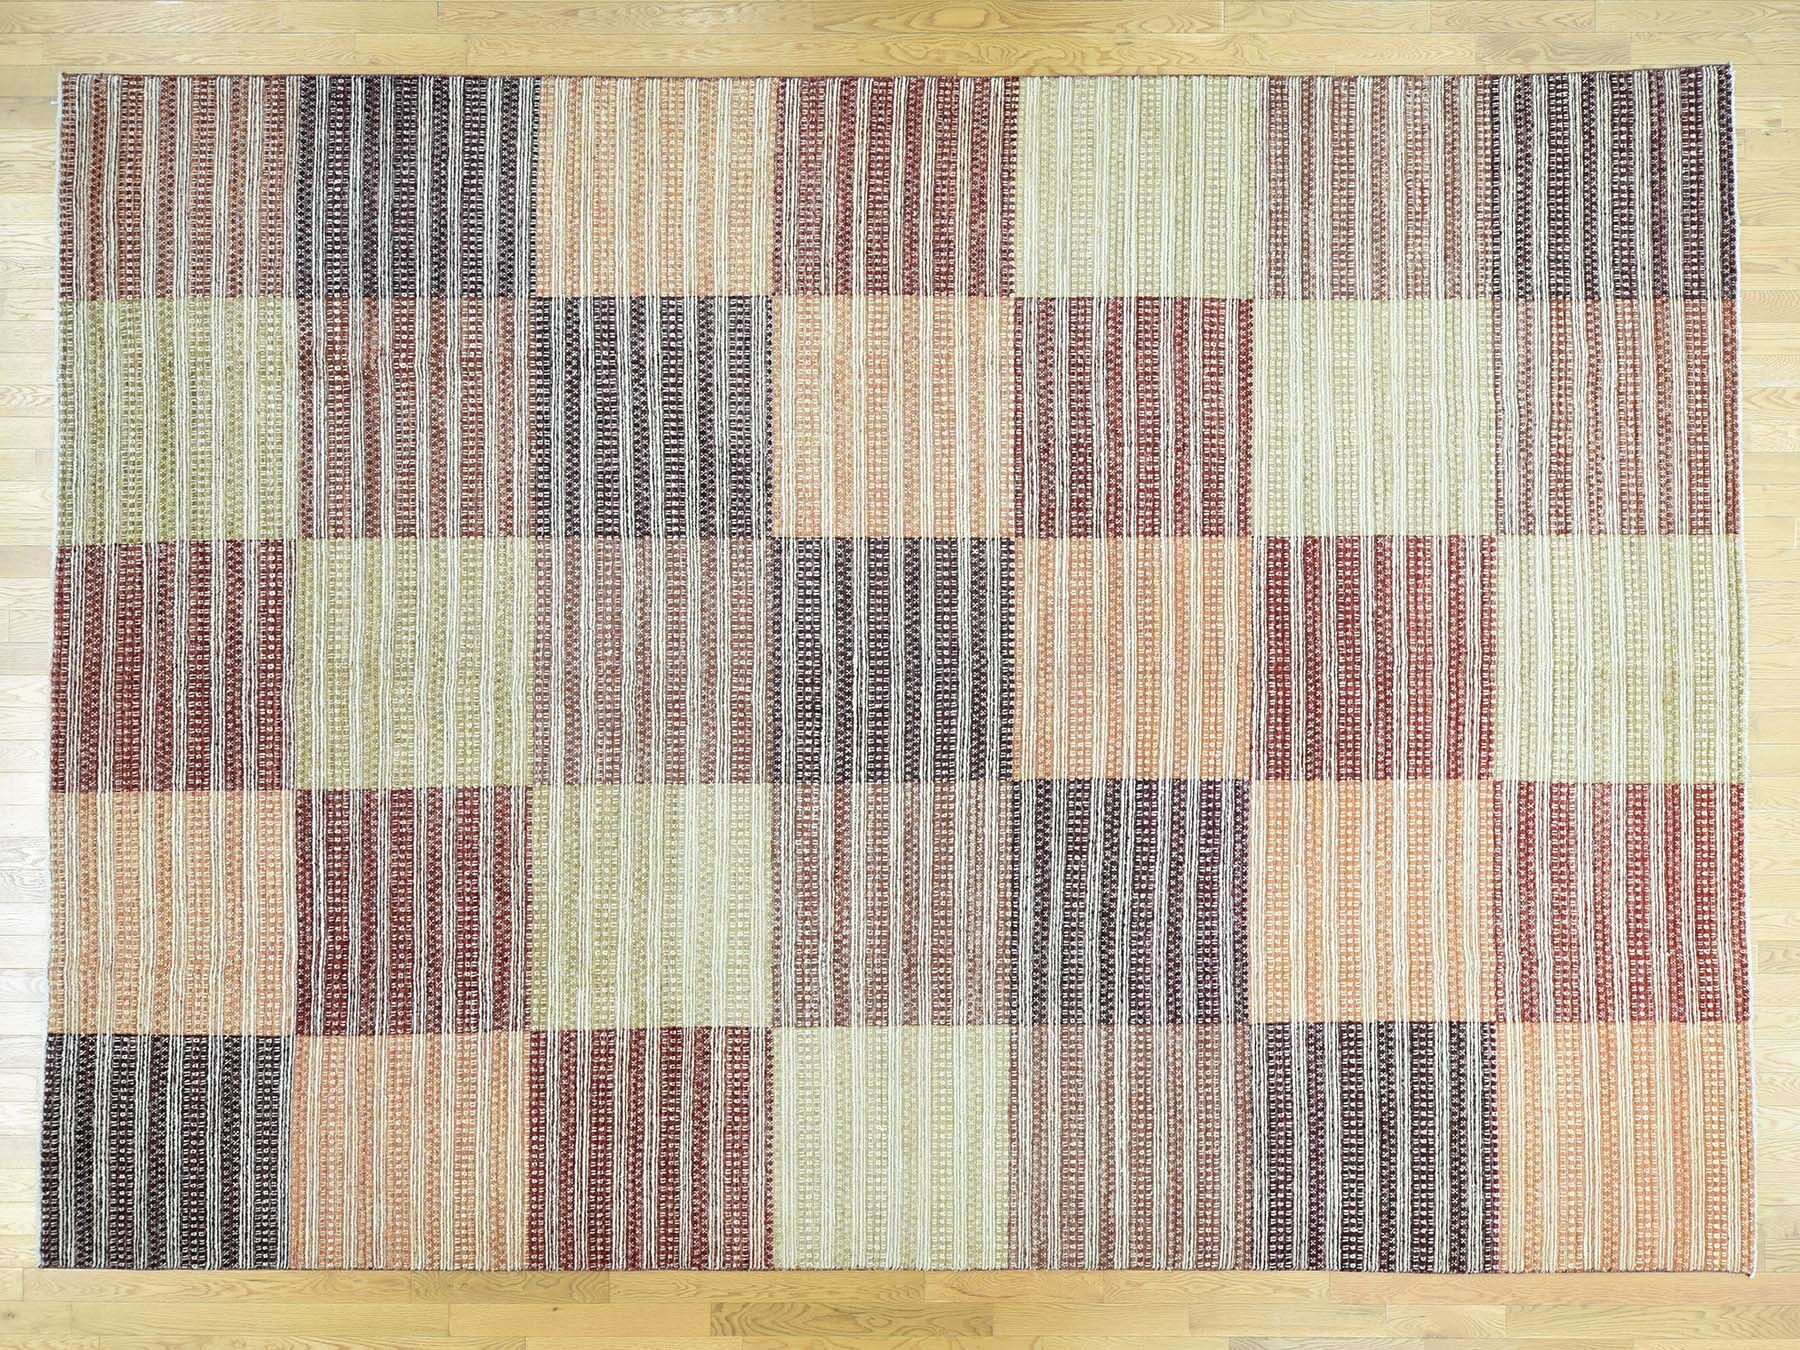 One-of-a-Kind Becker Block Design Handwoven Wool Area Rug